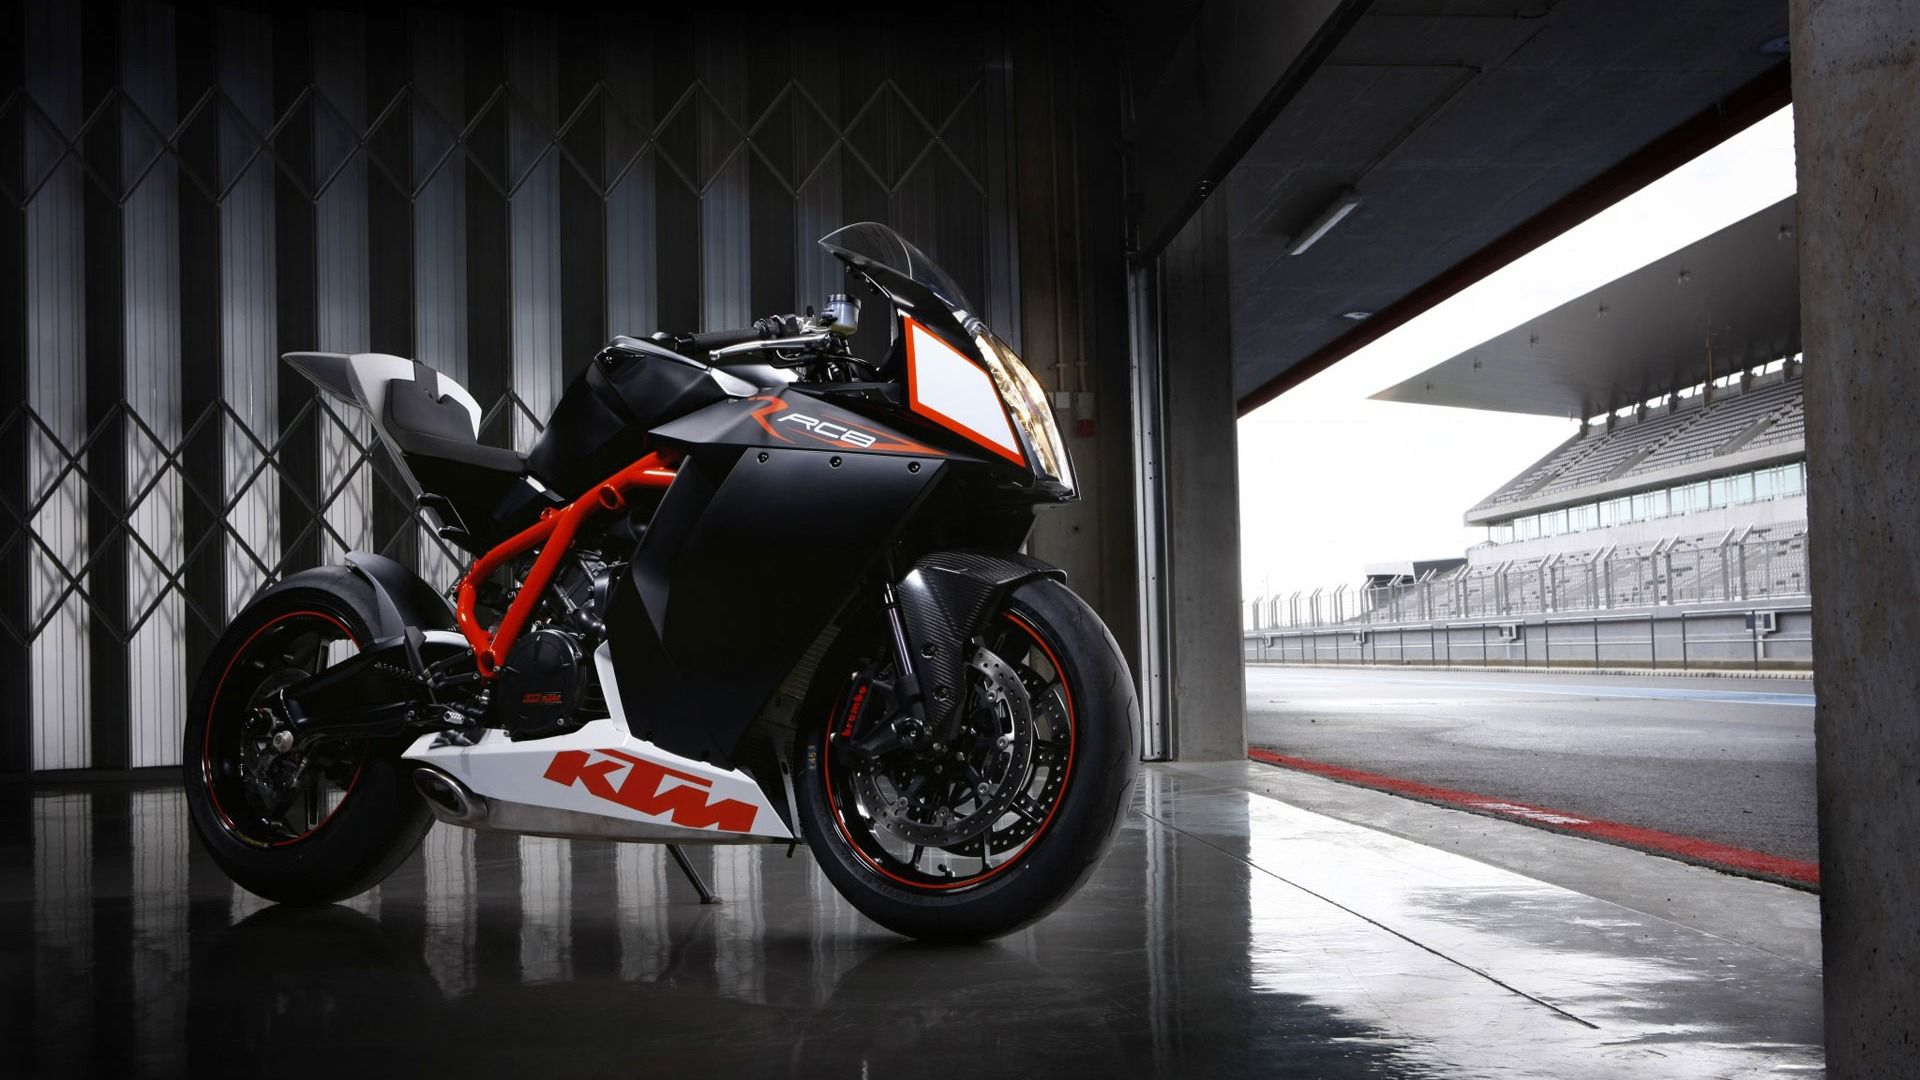 KTM RC8 2016, HD Bikes, 4k Wallpapers, Images, Backgrounds ...